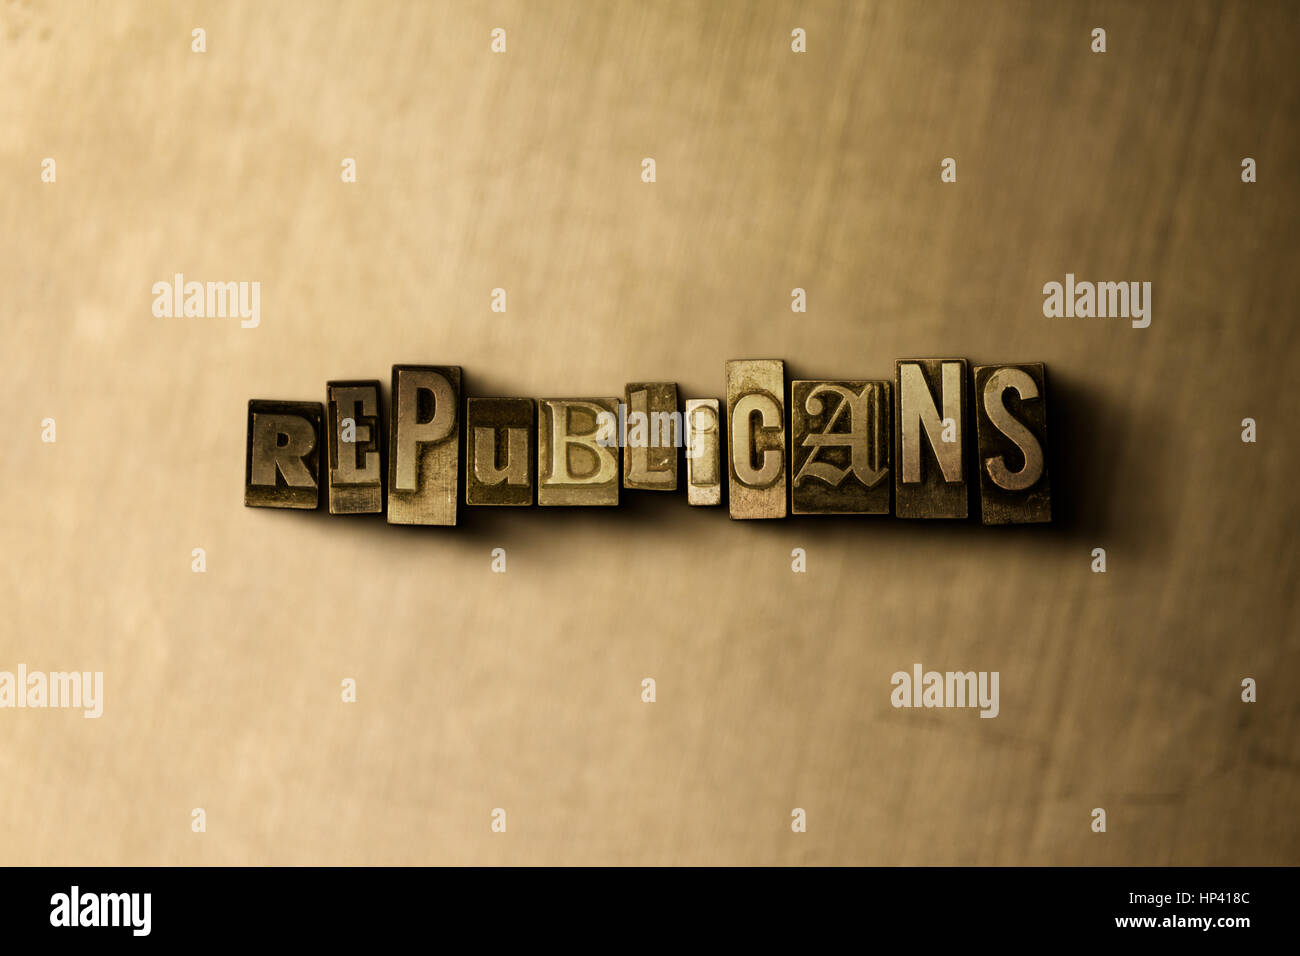 REPUBLICANS - close-up of grungy vintage typeset word on metal backdrop. Royalty free stock illustration.  Can be - Stock Image